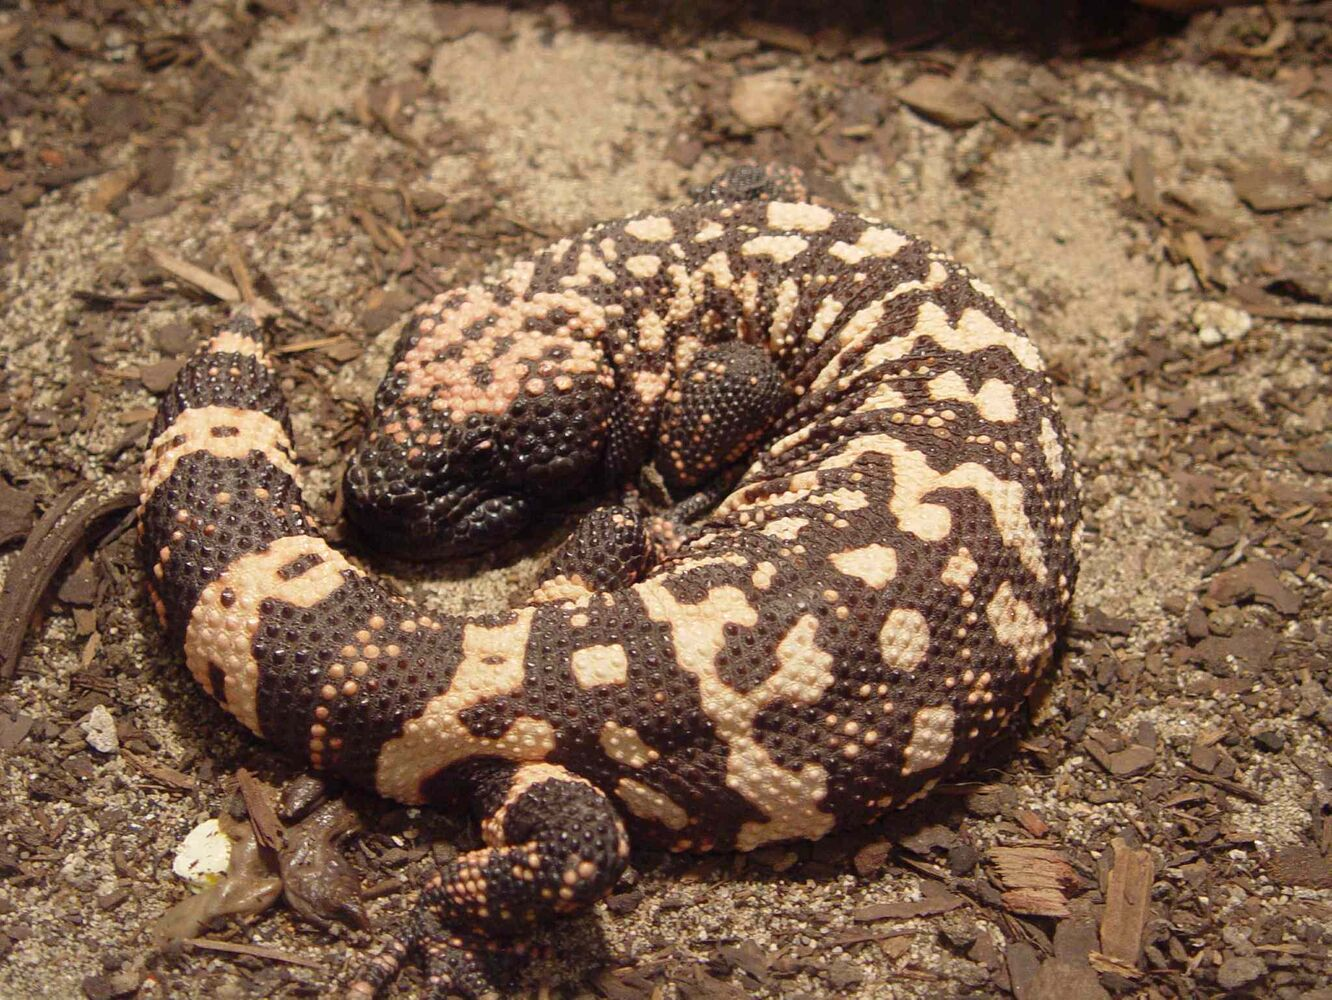 10 Reptiles (Reptilia) (a) all Helodermatidae (e.g. gila monster - pictured - and Mexican bearded lizard).